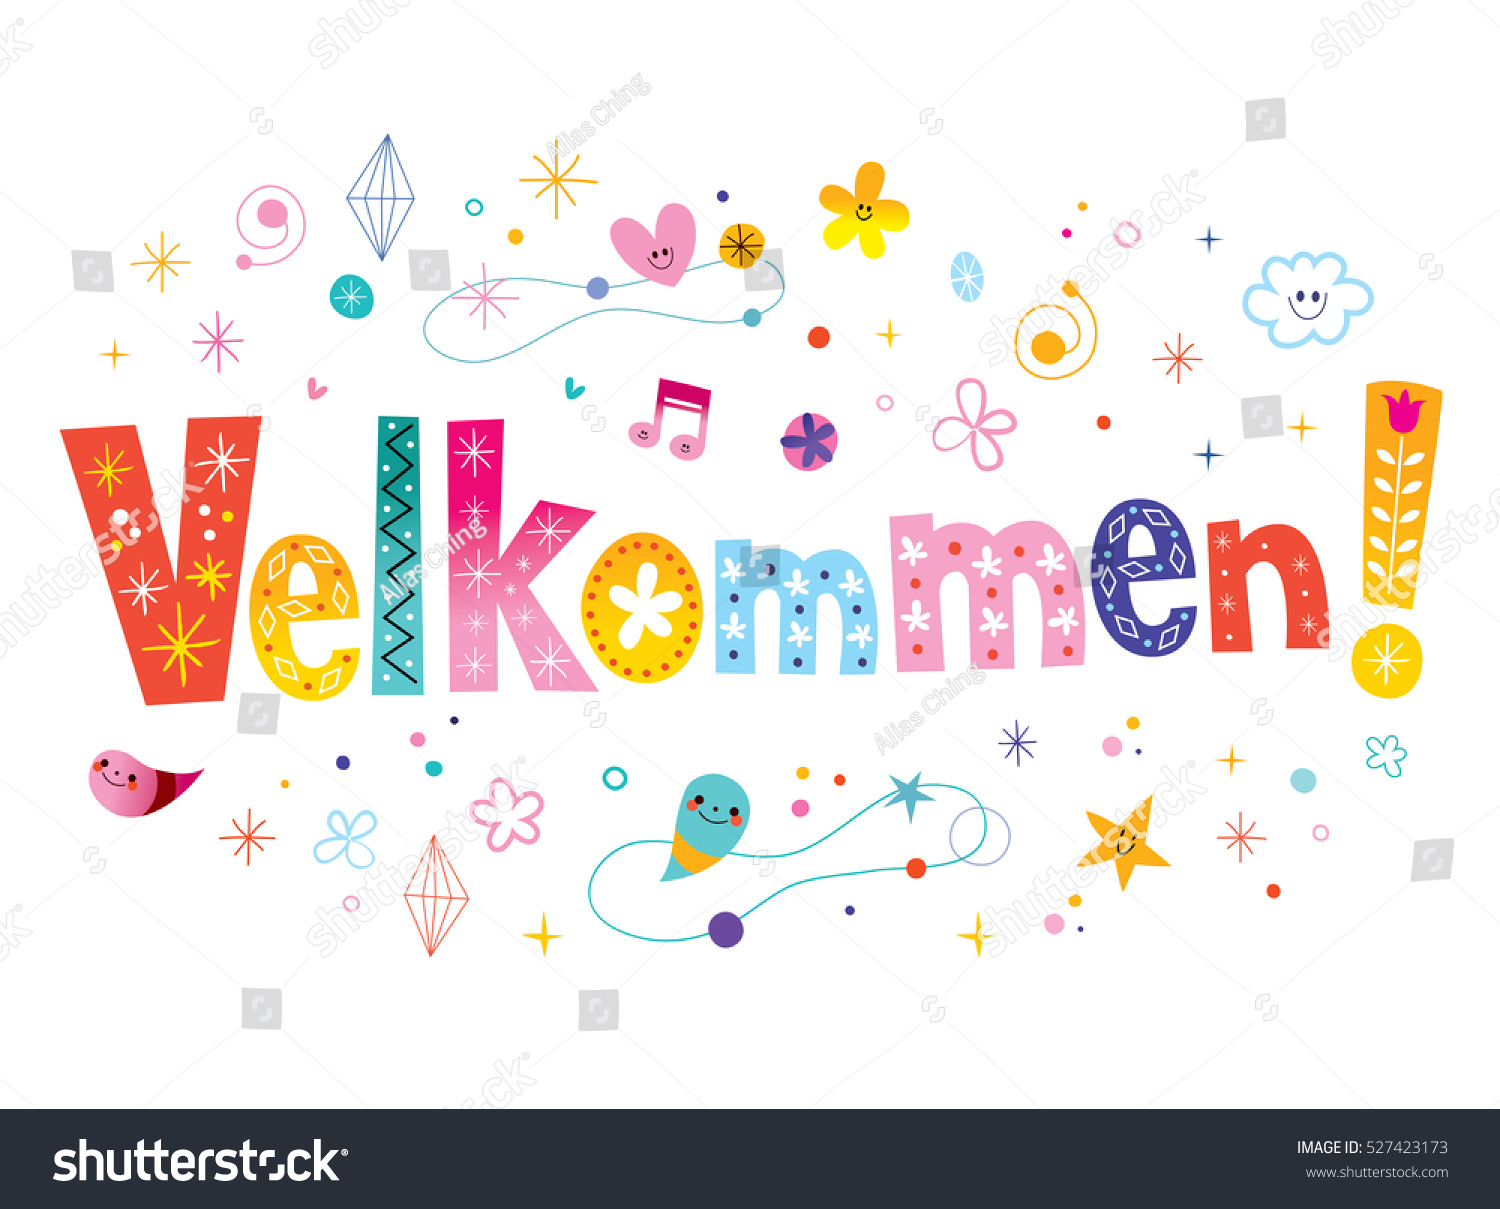 velkommen welcome danish language stock vector 527423173 happy retirement clipart postman happy retirement clipart holding sing